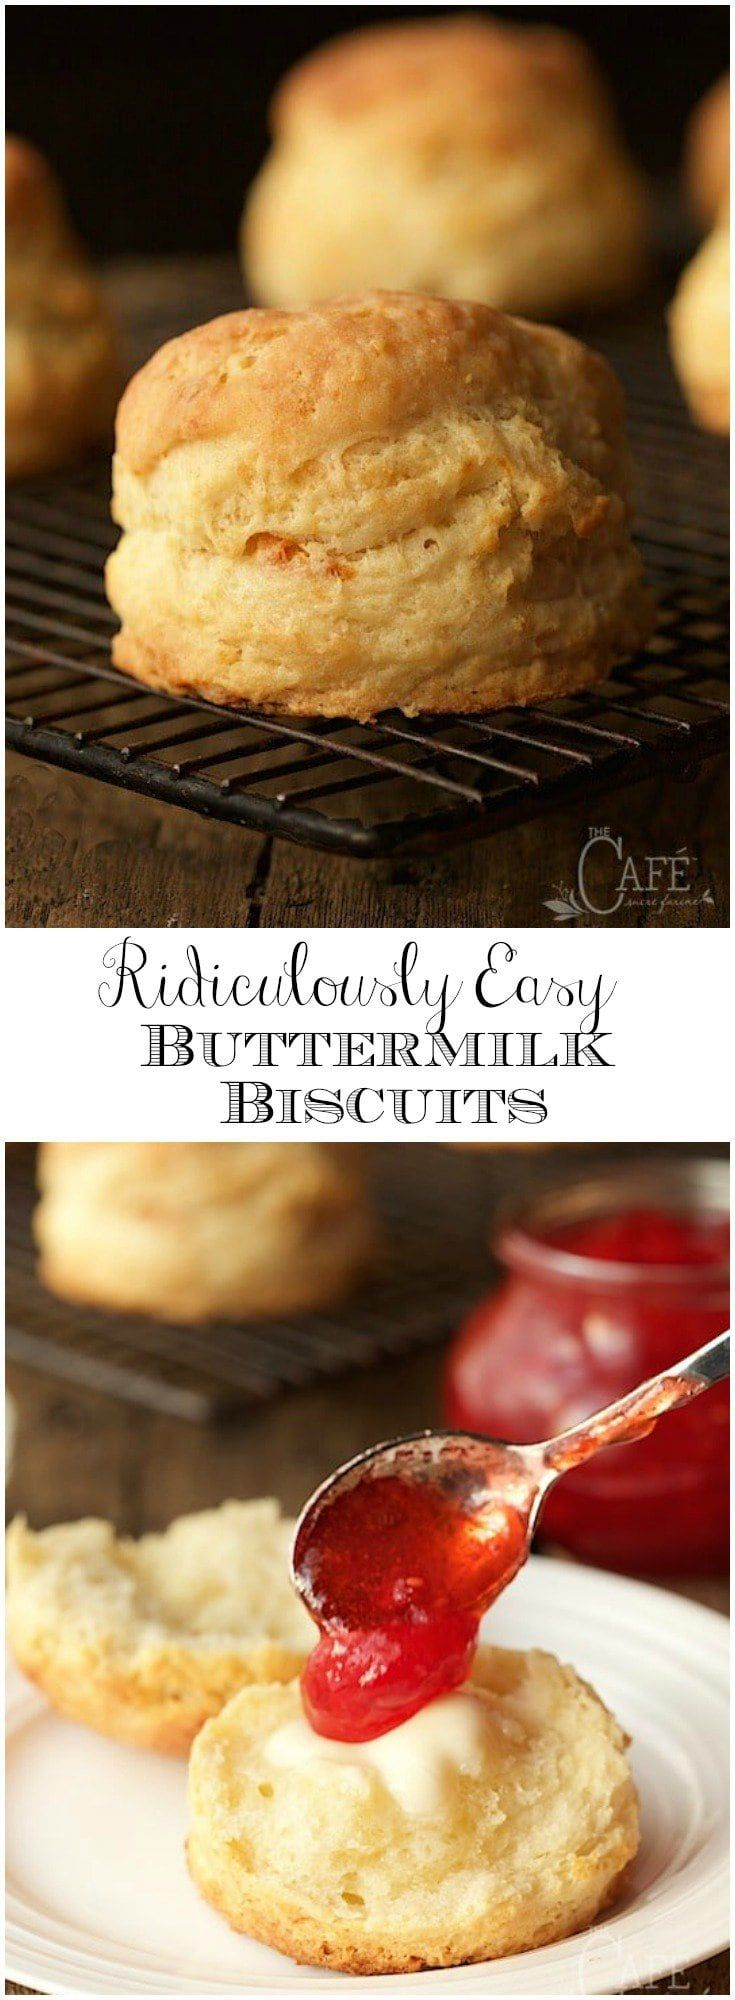 Easy as in, less than 10 minutes to throw together. Next thing you know, tall, flaky, incredibly delicious biscuits! will be rolling out of your oven!